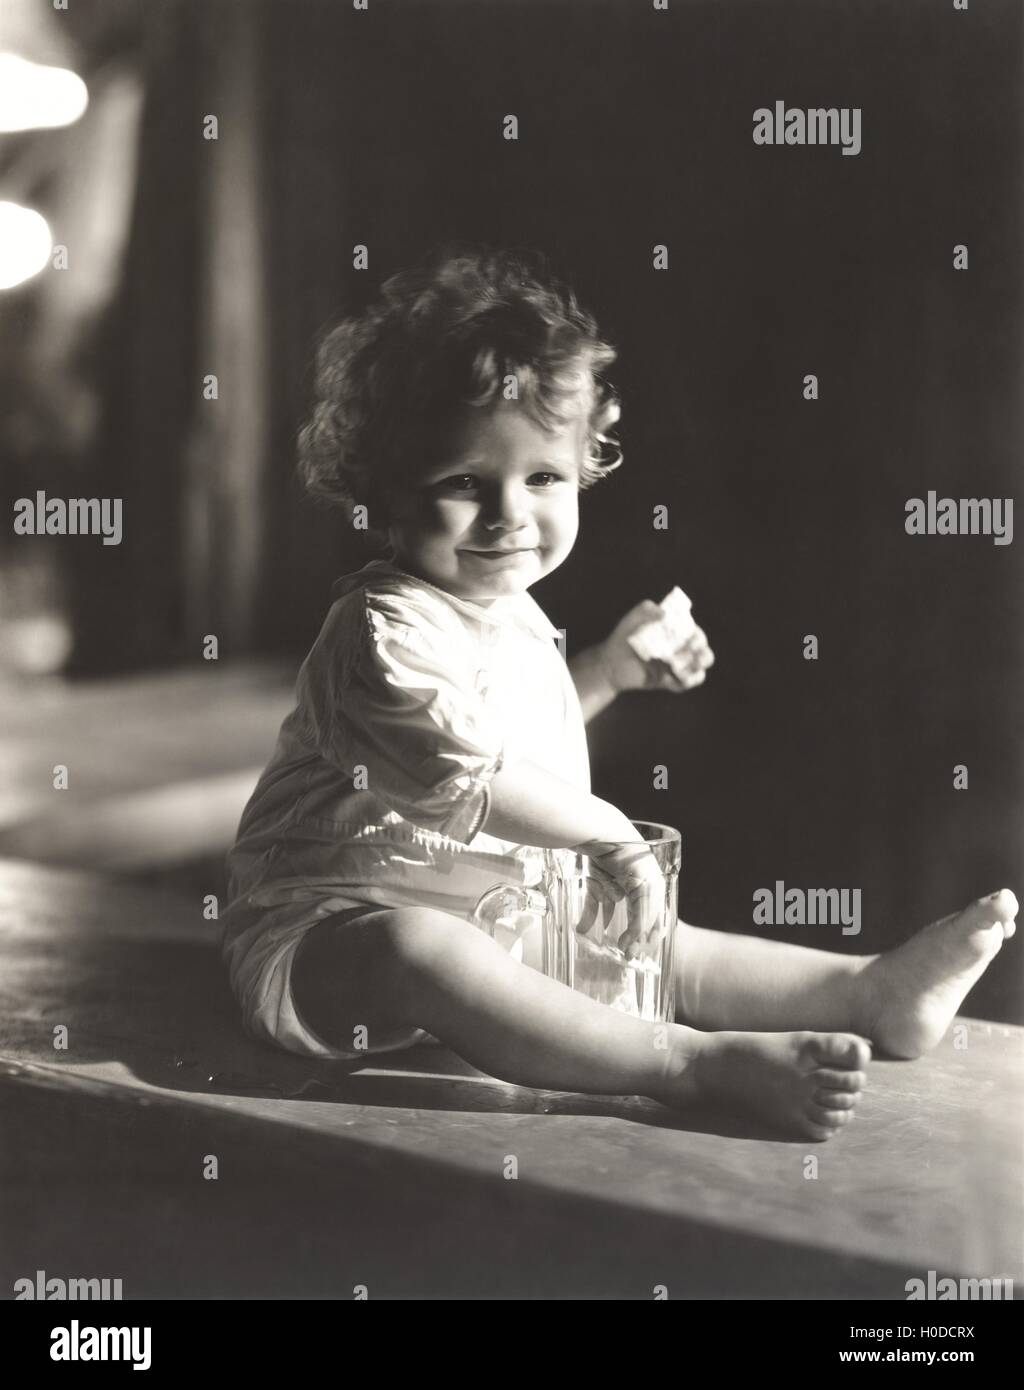 Baby boy with his hand in a beer glass - Stock Image